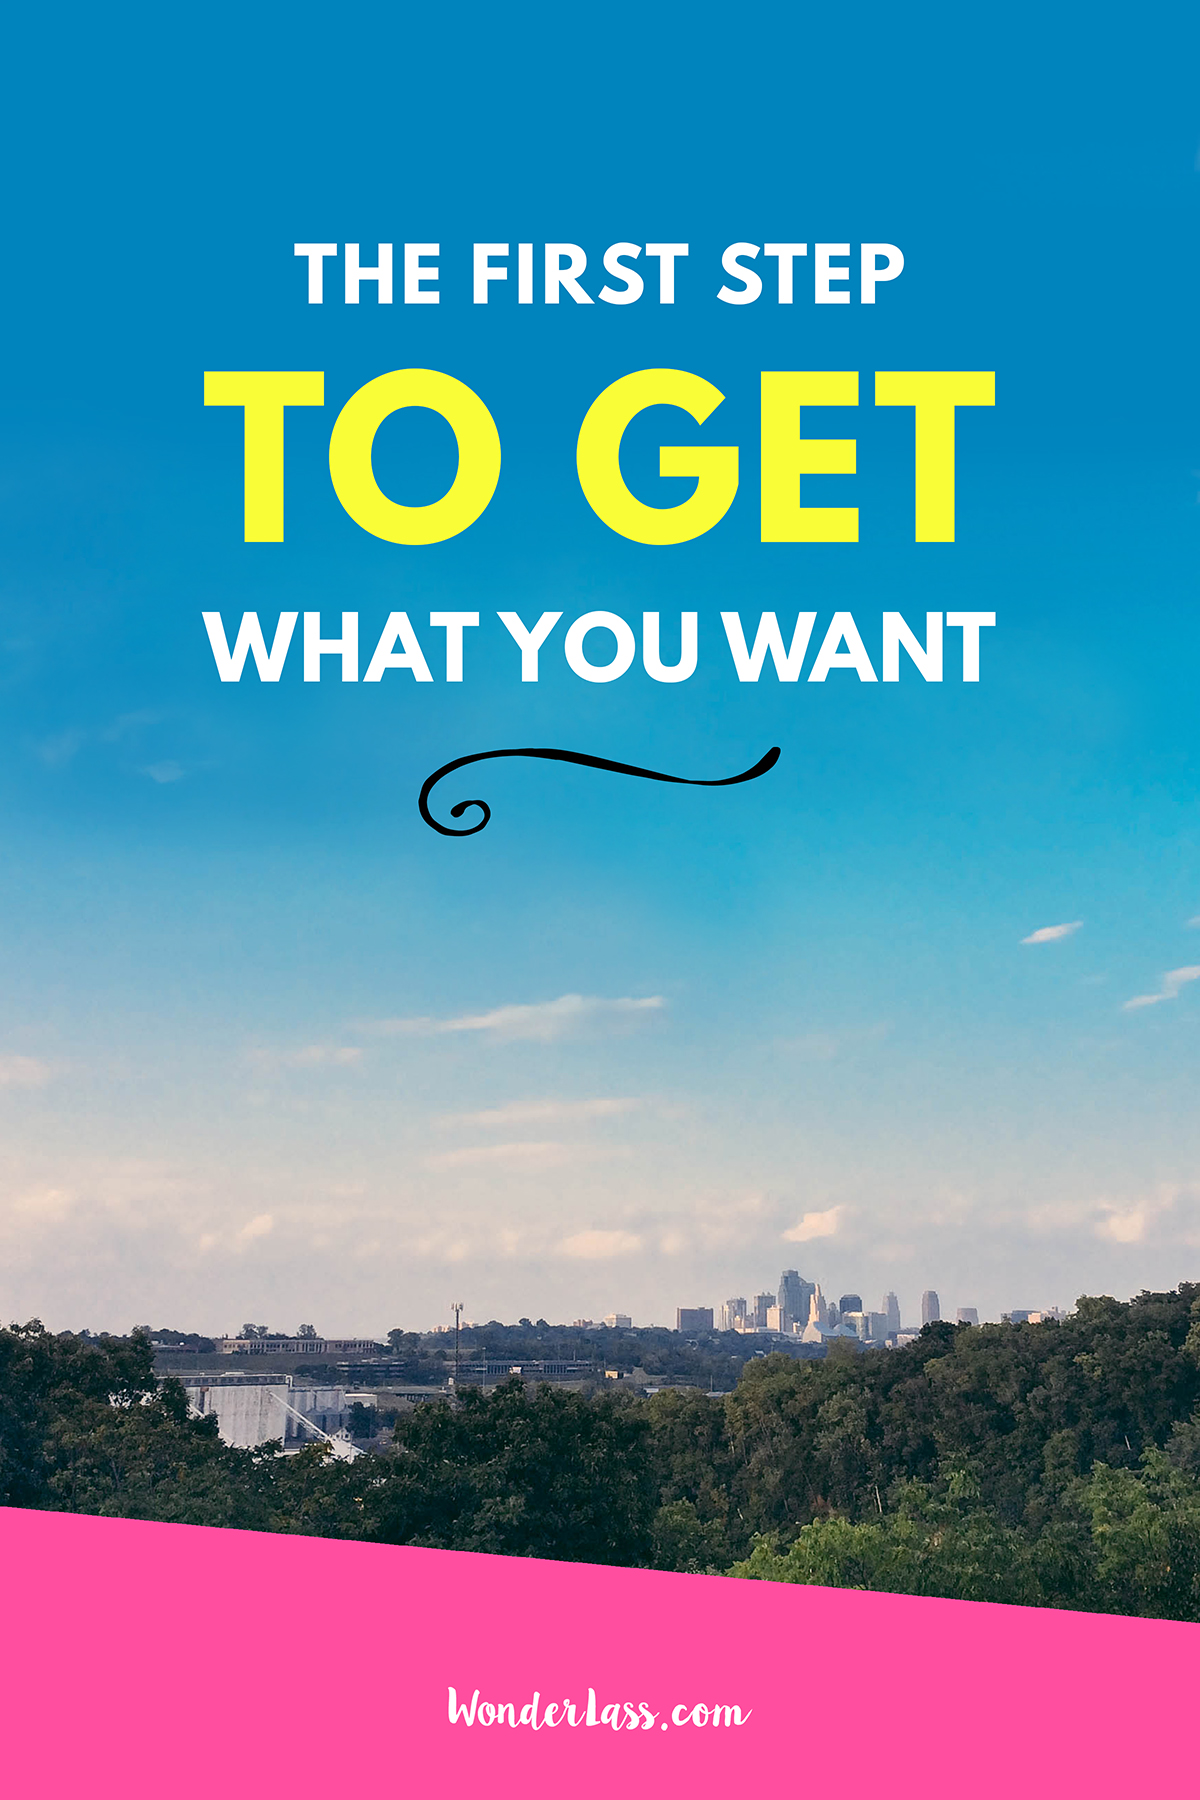 How to take the first step to get what you WANT! Don't just think about it- make it happen.